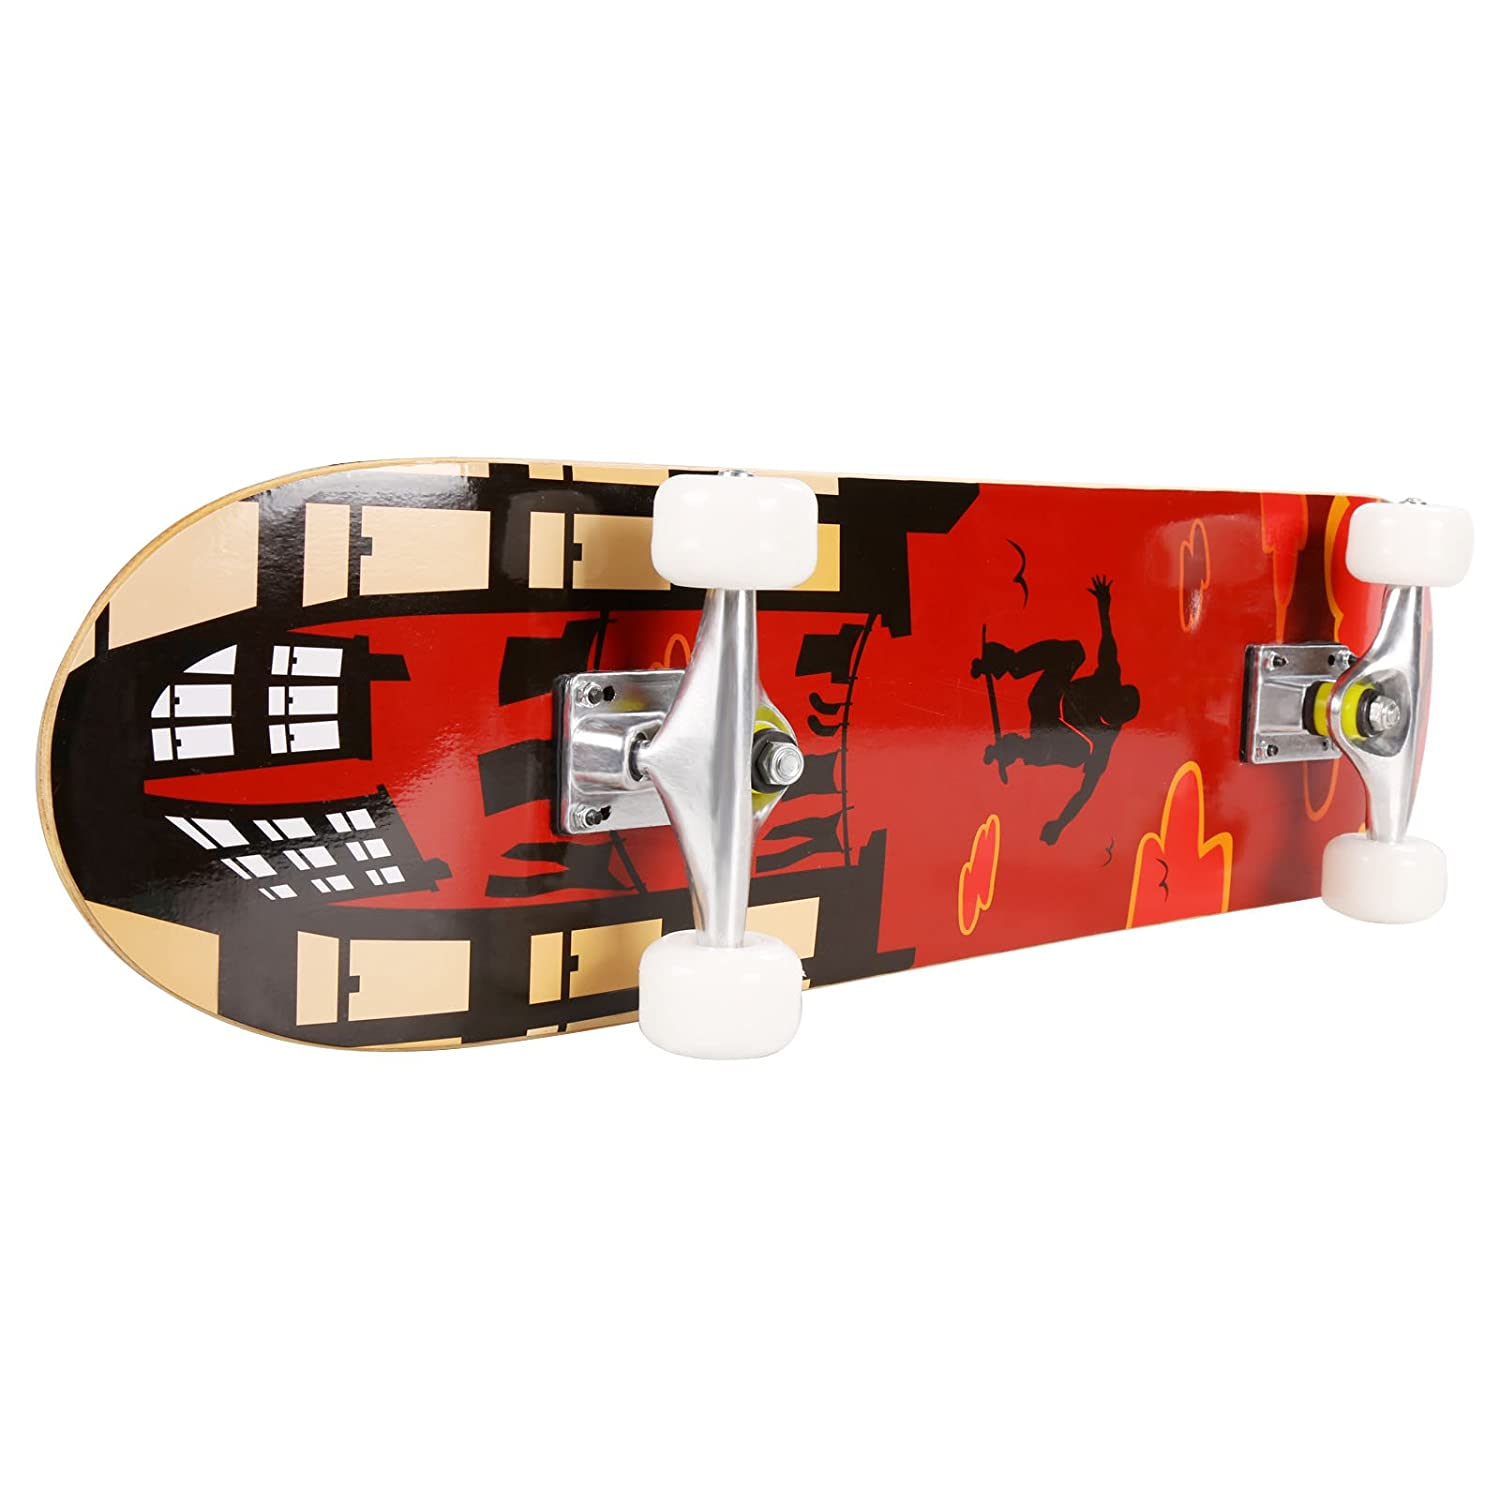 Hikole Skateboard – 31 x 8 Complete PRO Skateboard – Double Kick 9 Layer Canadian Maple Wood Adult Tricks Skate Board for Beginner, Birthday Gift for Kids Boys Girls 5 Up Years Old